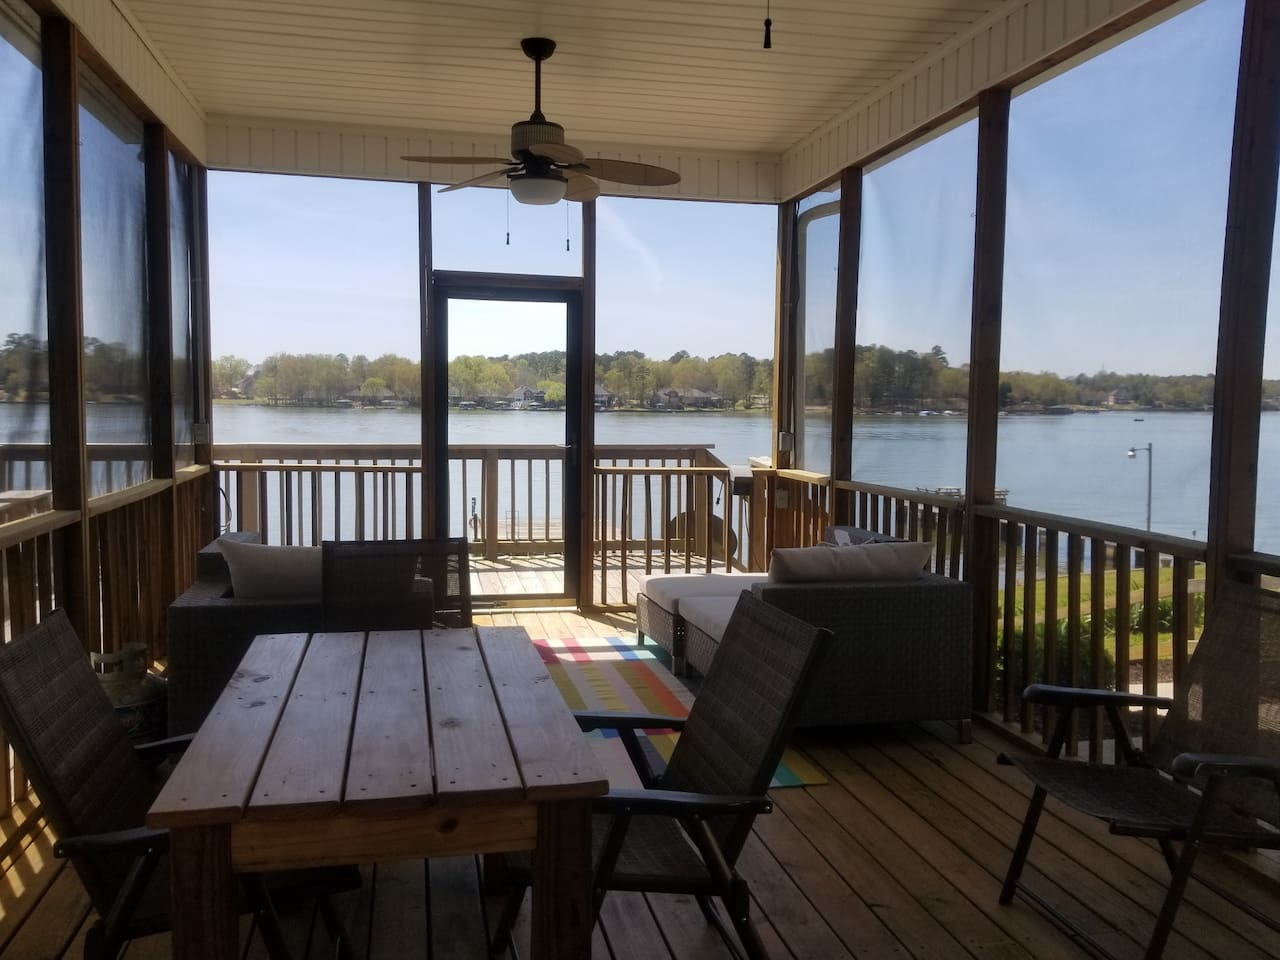 Large screened porch with fans and lighting